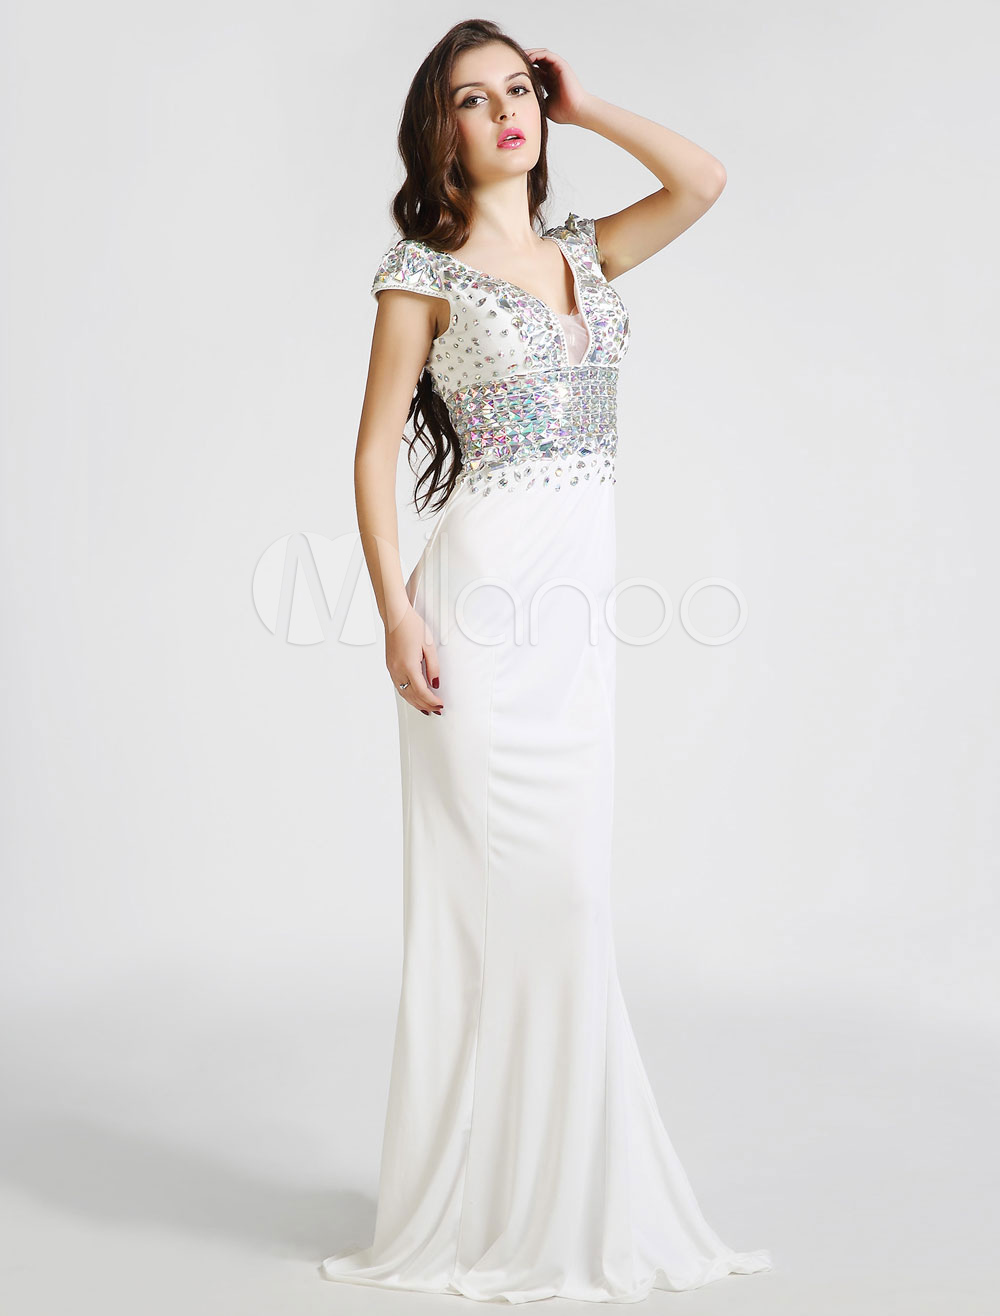 Rhinestone Beaded Deep V-Neck Cap Sleeves Mermaid Evening Gown ...